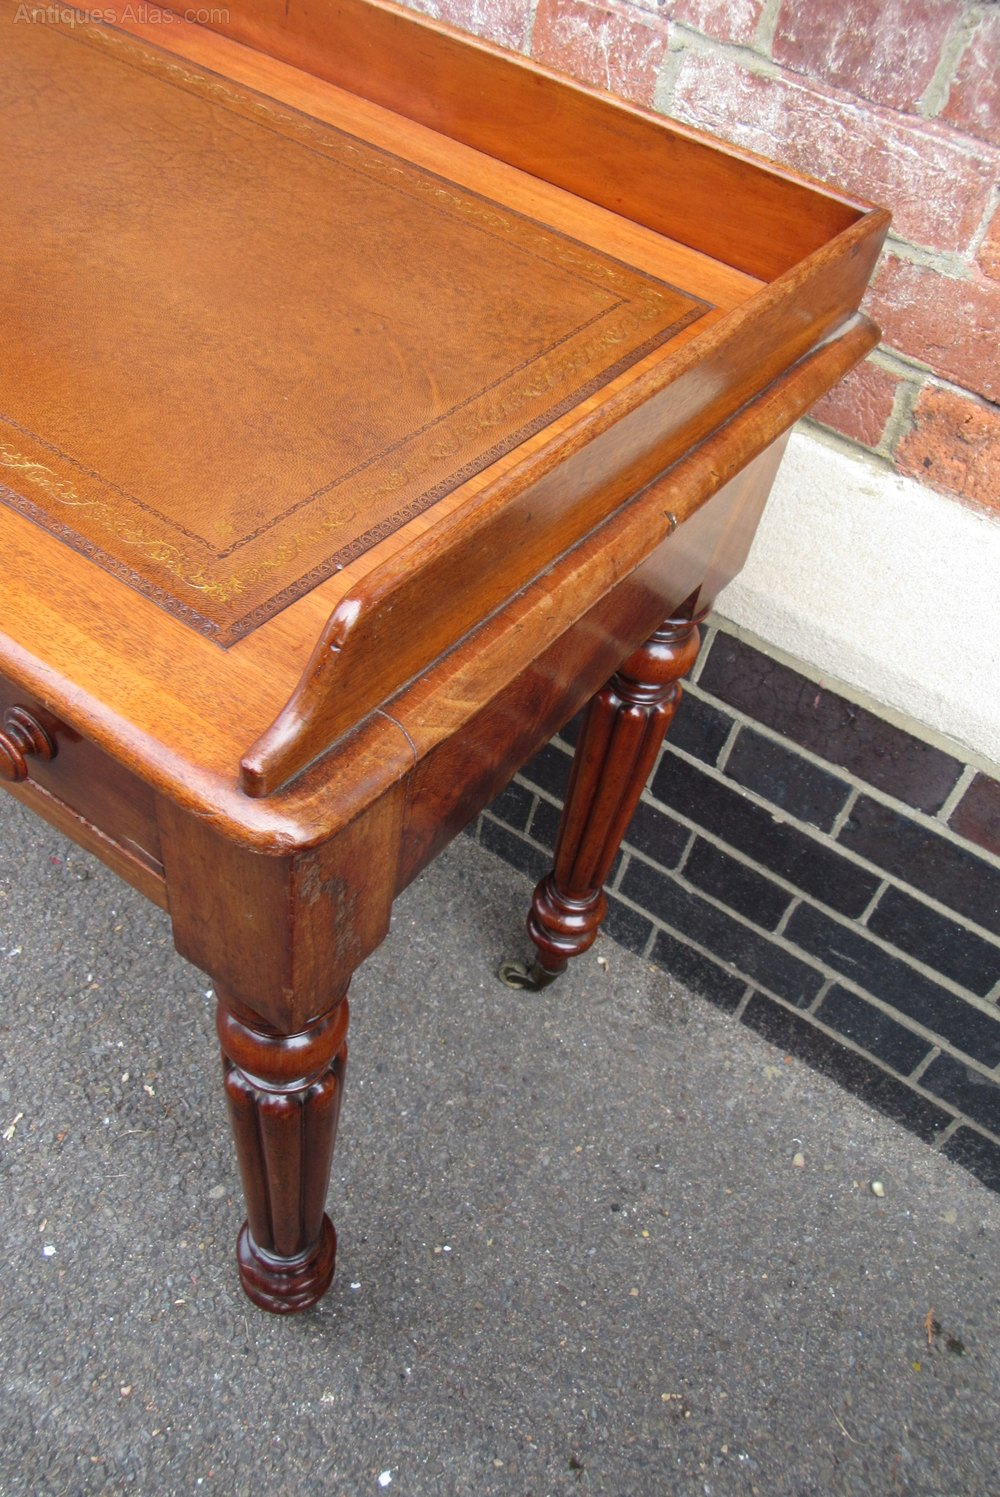 victorian writing desk Shop target for writing desk desks you will love at great low prices free shipping on orders $35+ or free same-day pick-up in store.